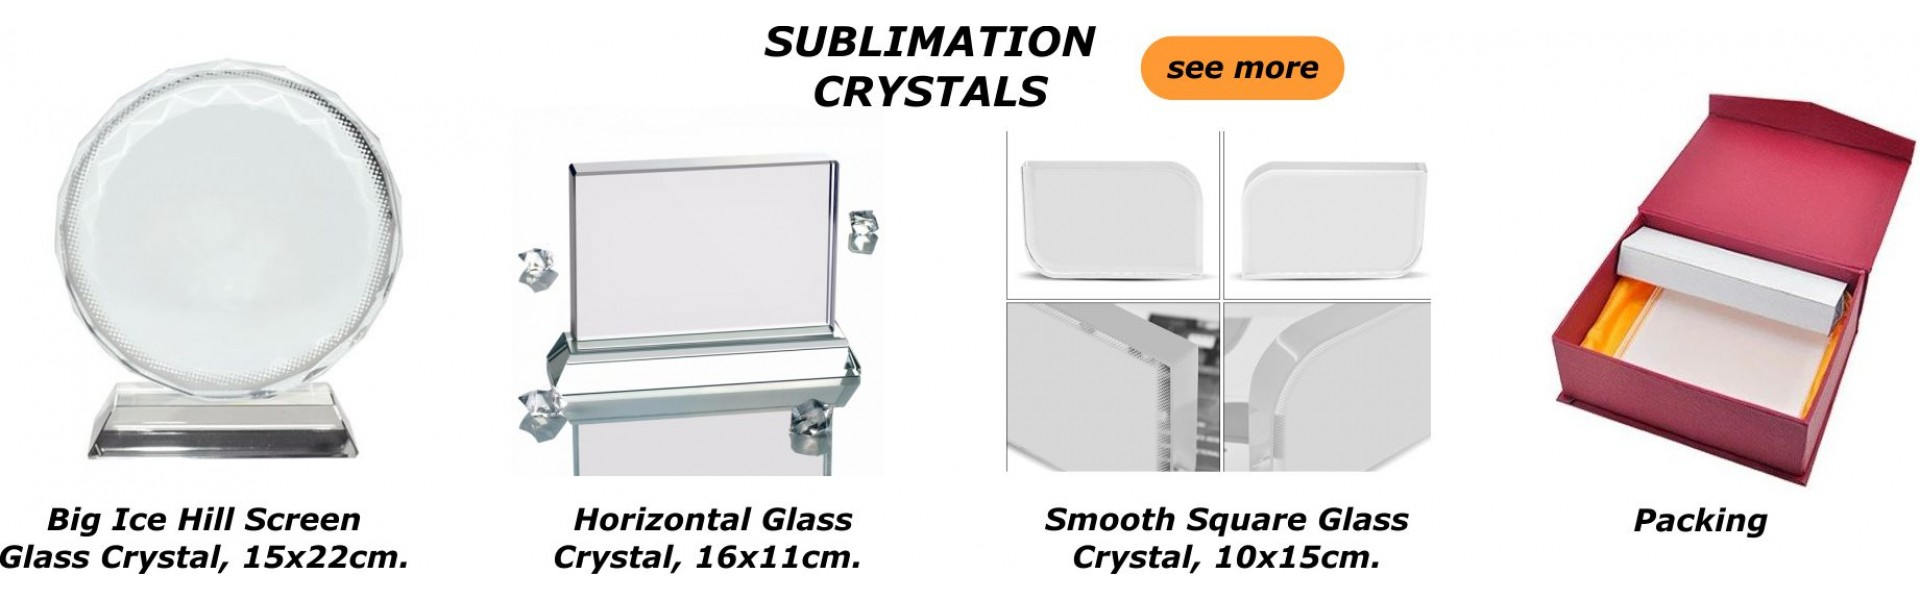 Sublimation Crystals